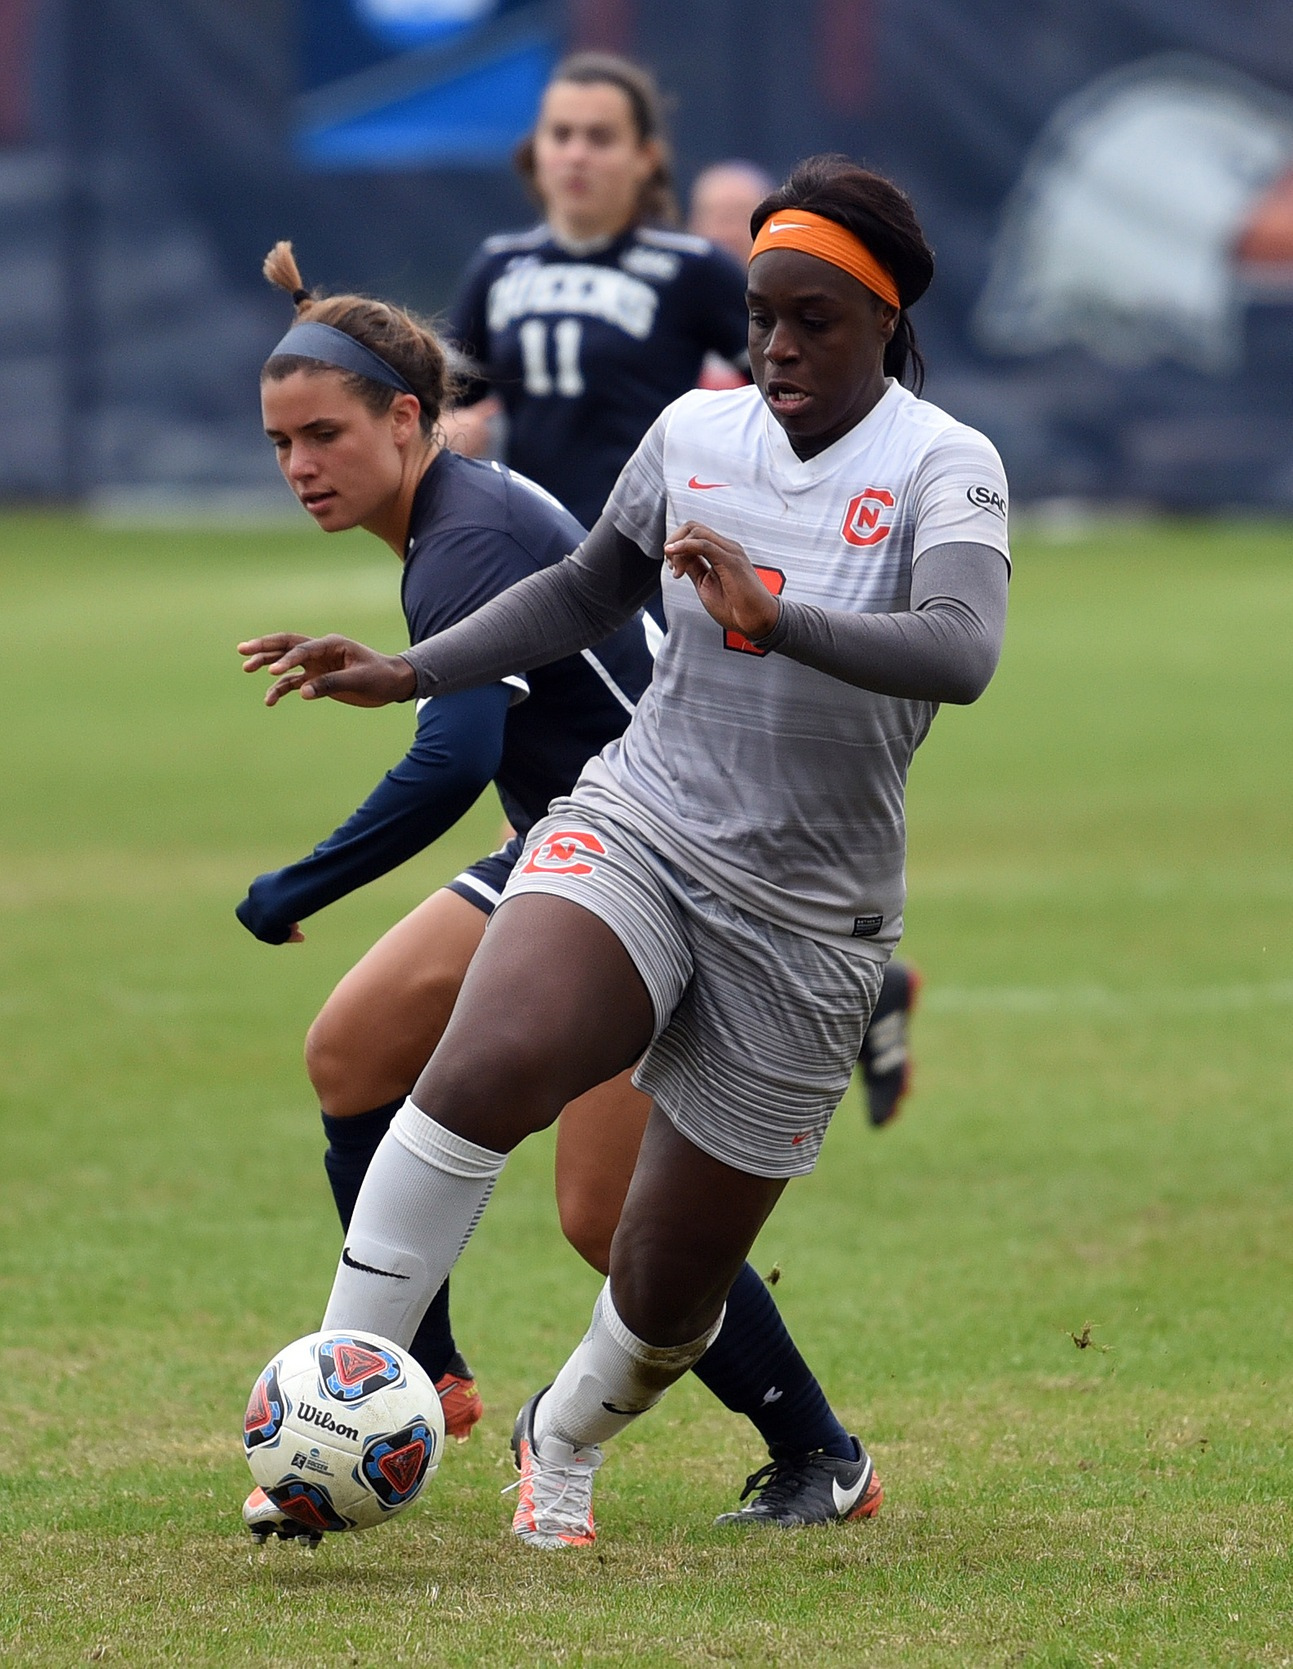 Carson-Newman Women's Soccer: Forwards Position Preview